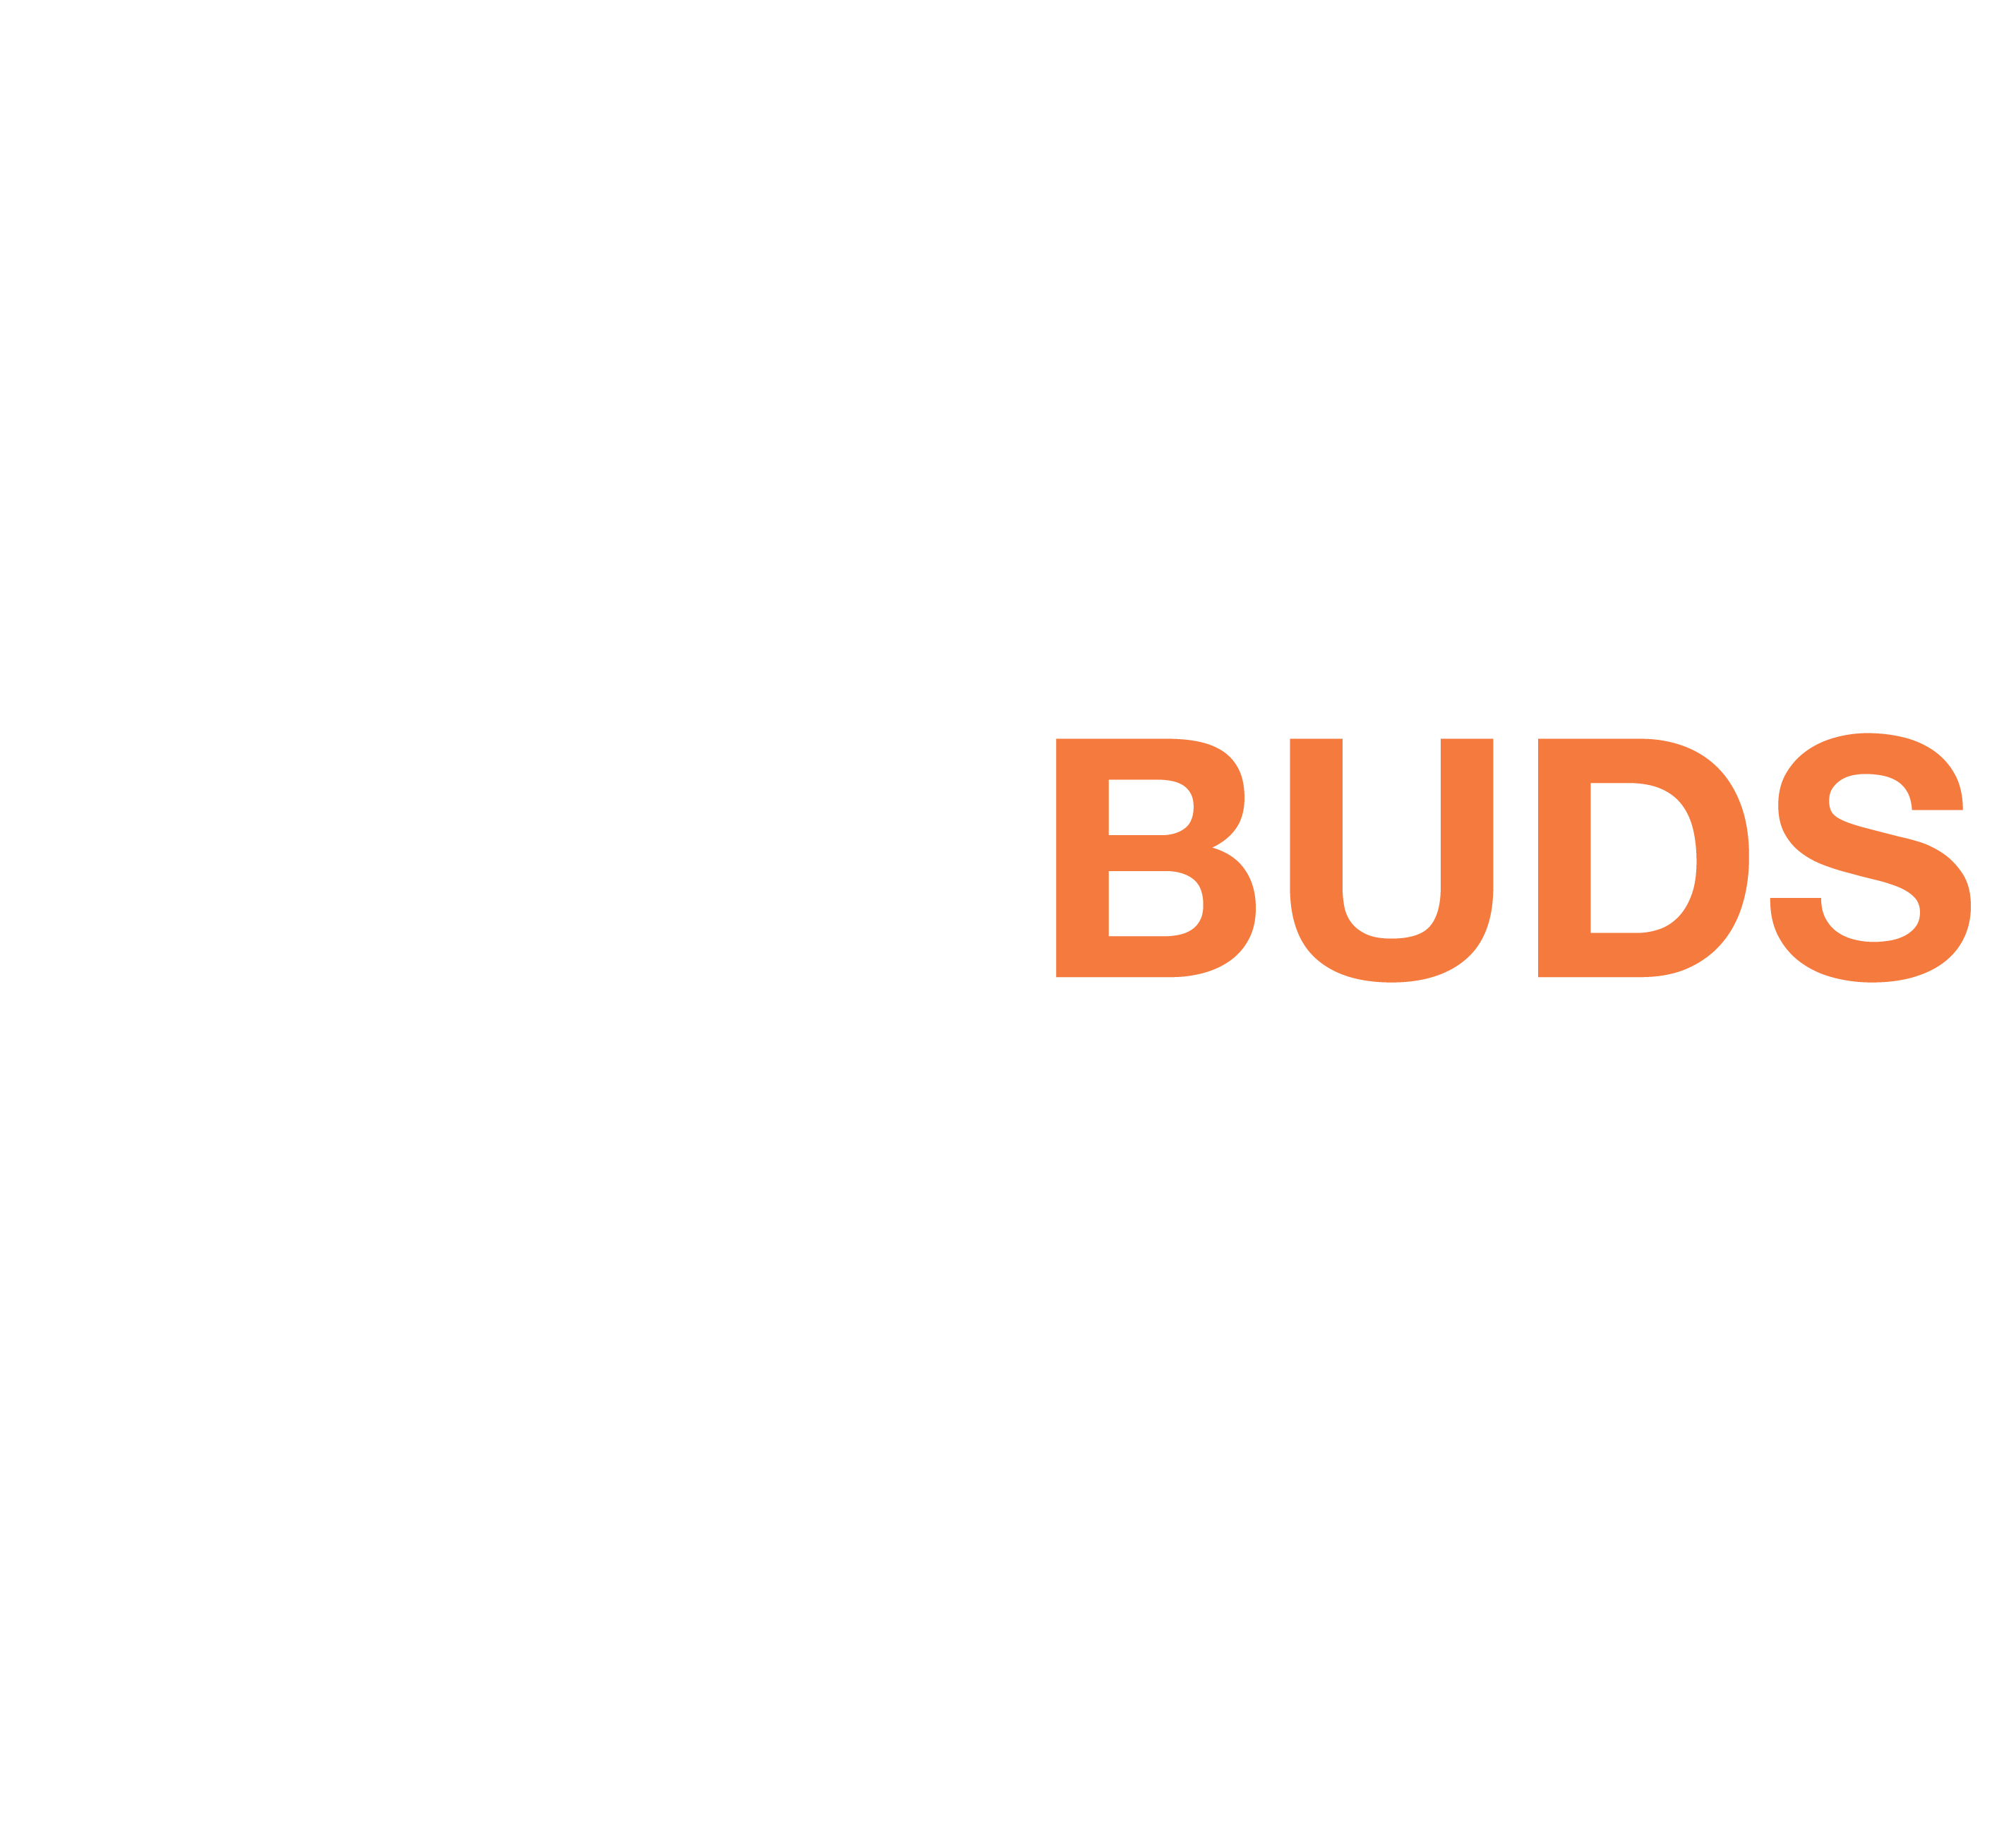 Best Buddies Maryland Tastebuds Taste Buds Maryland